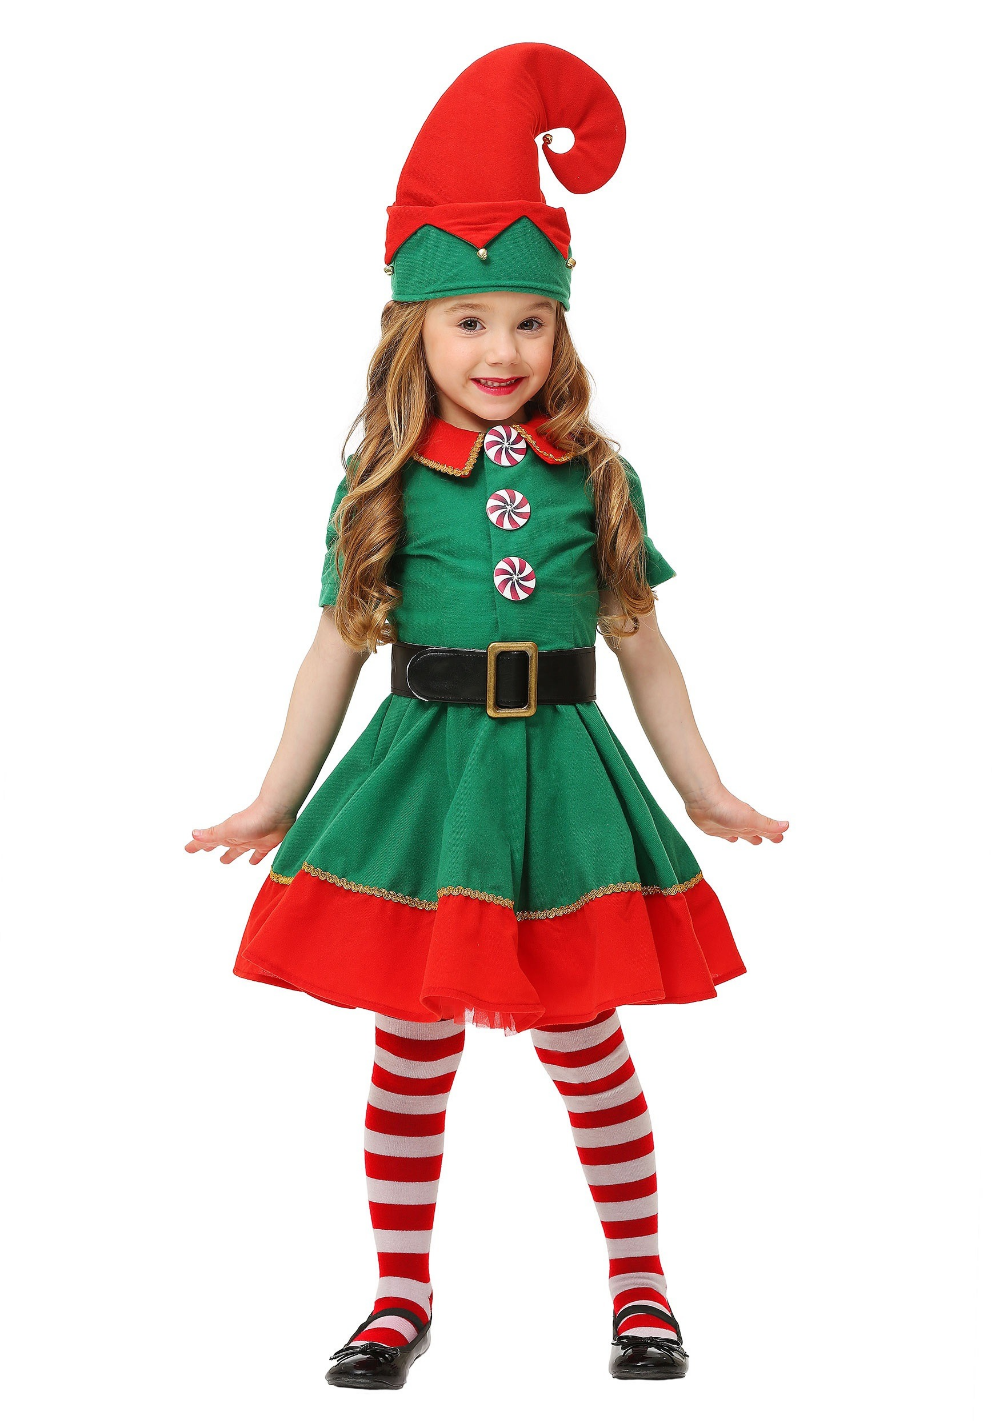 Toddler Holiday Elf Costume in 2020 Girl elf costume